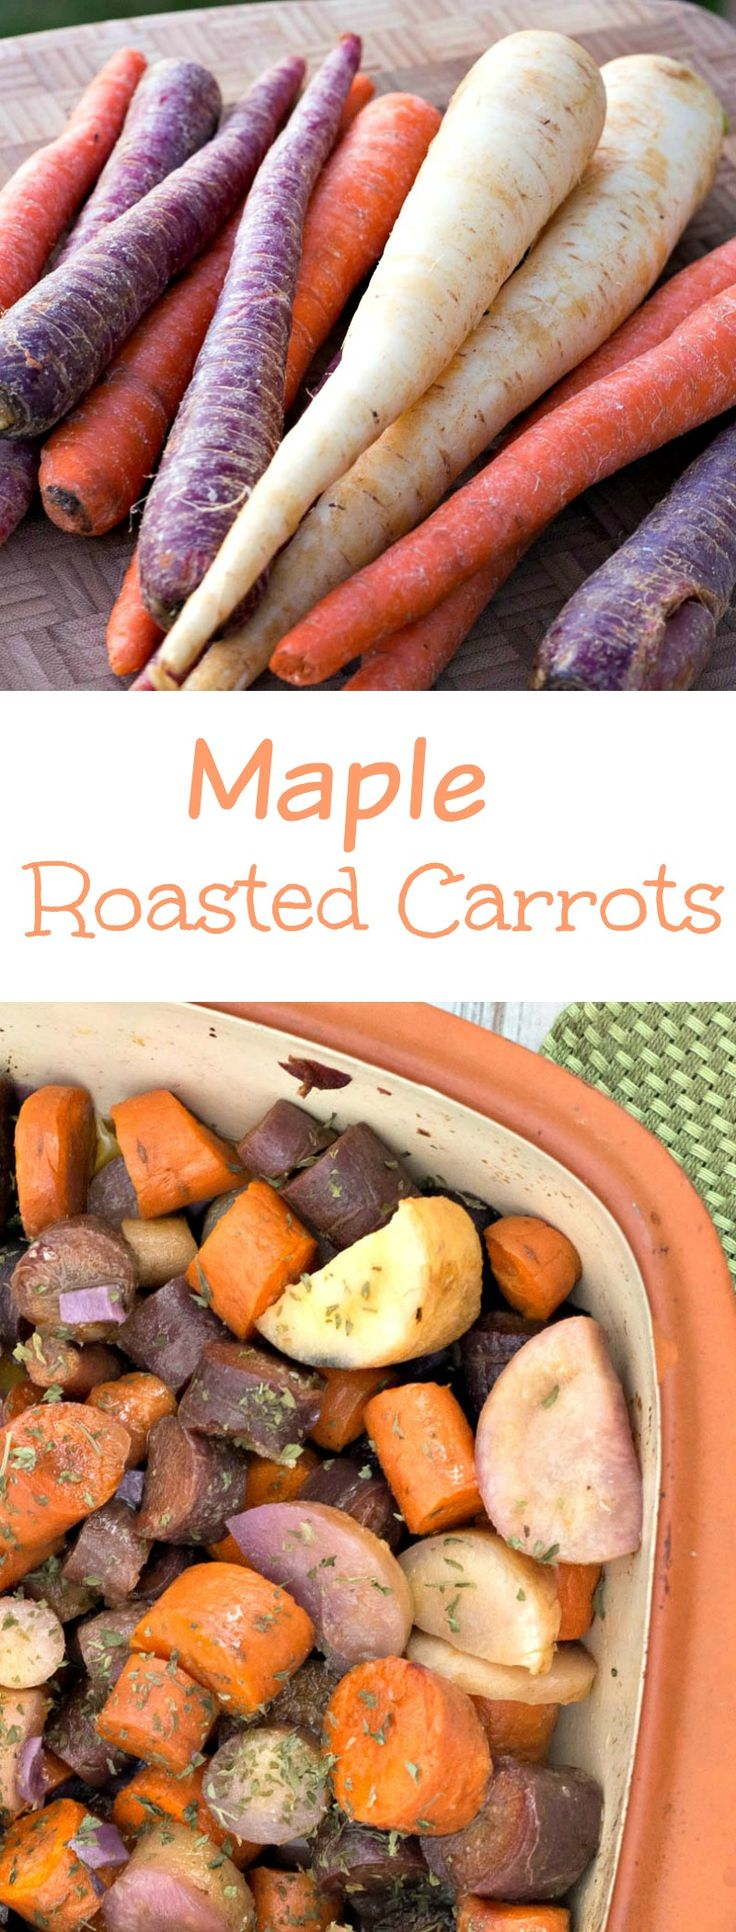 Maple Roasted Carrots - a simple side dish made by roasting carrots ...